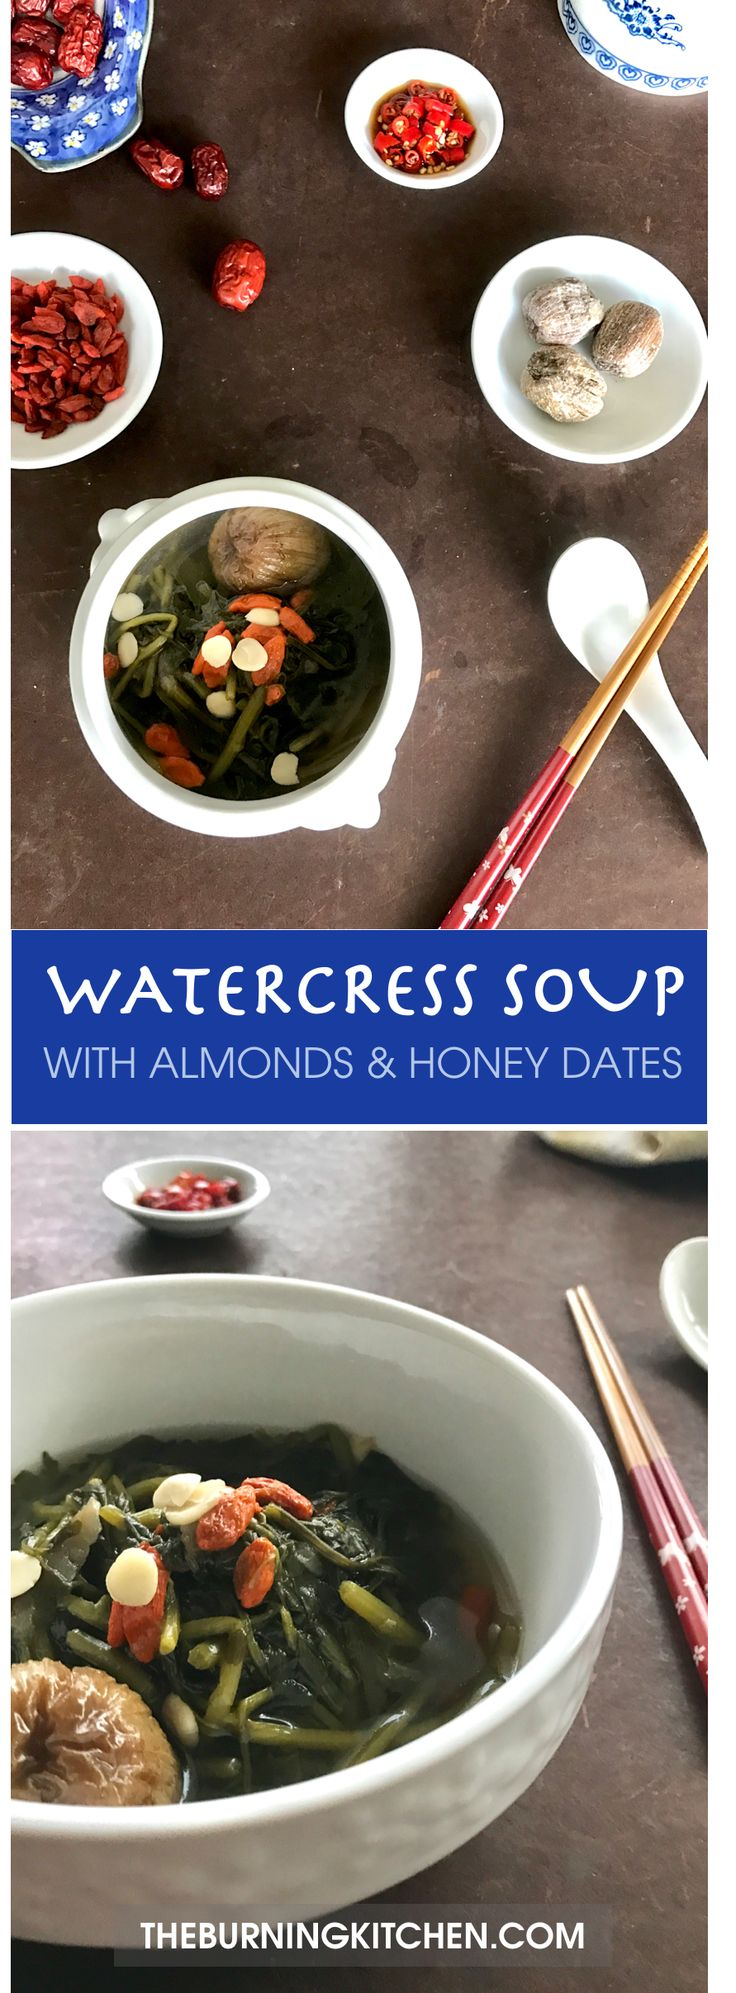 The Burning Kitchen | Watercress Soup with Almonds and Honey Dates - Beat the common cold with this flu-busting 'cooling' Chinese soup!